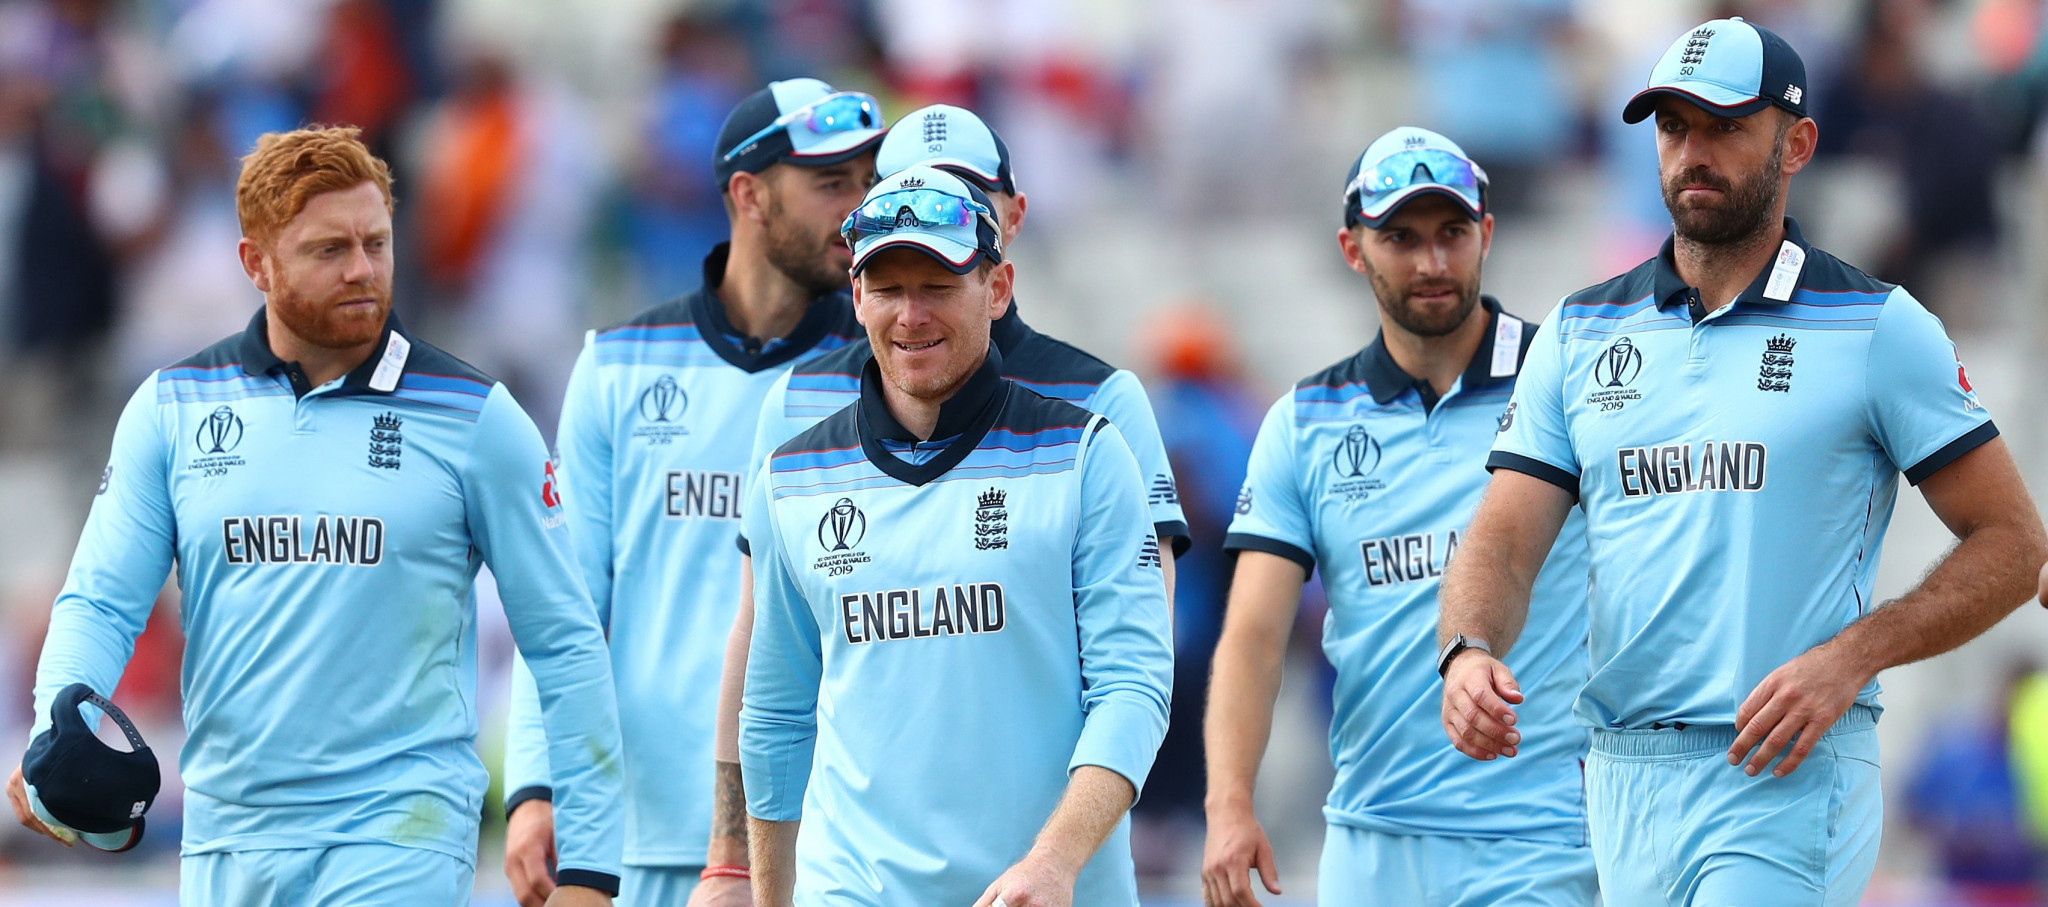 England will contest the 2023 ICC Cricket World Cup as defending champions ©Getty Images